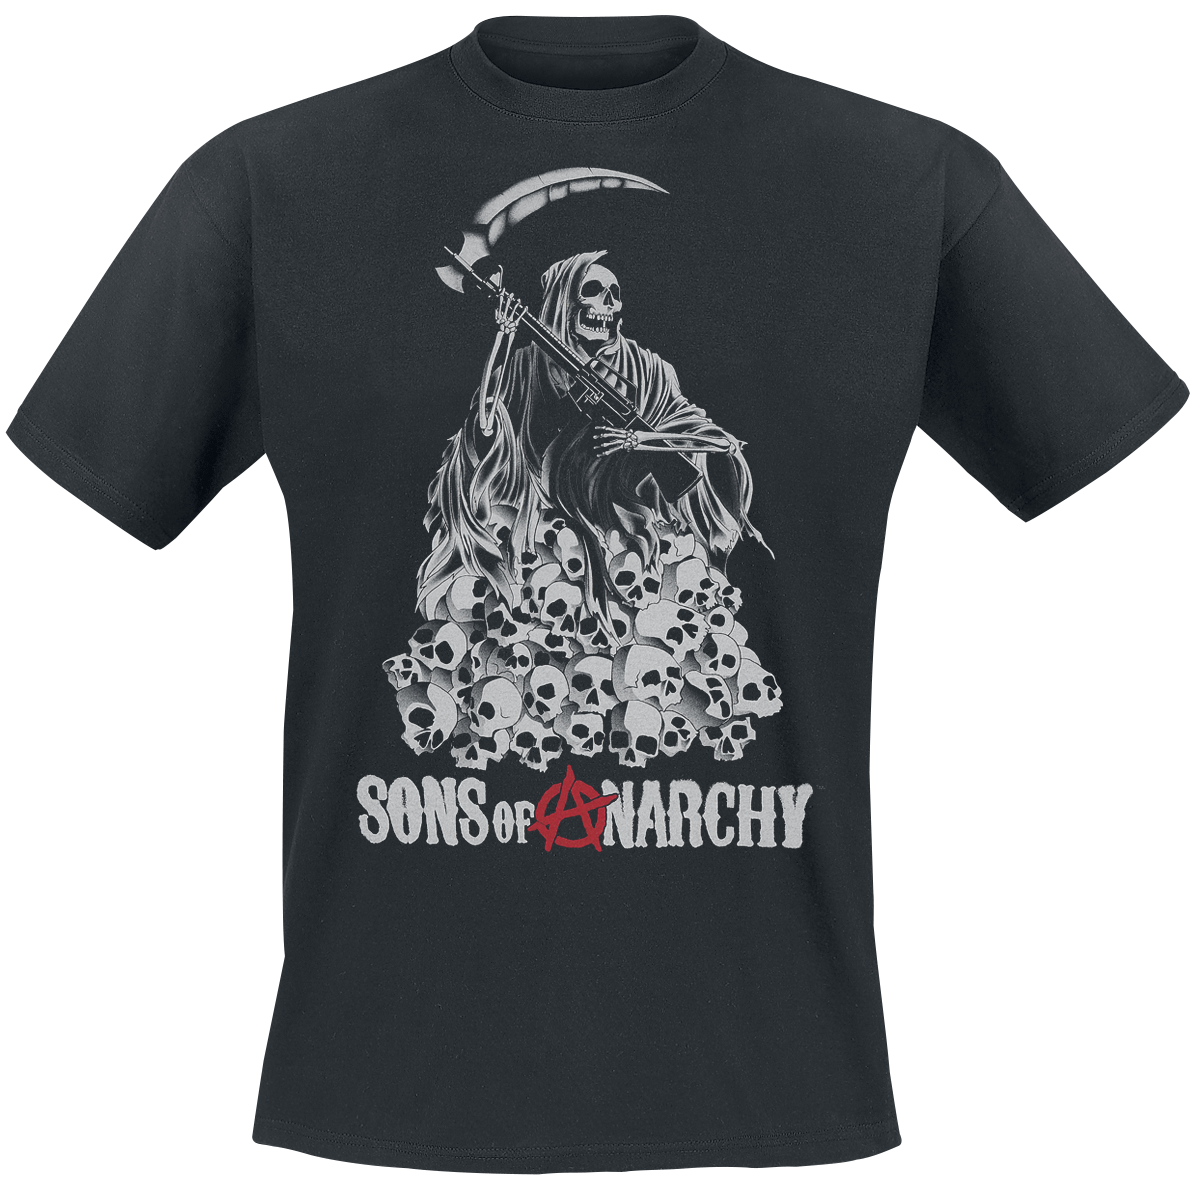 Sons Of Anarchy - Skull Reaper - T-Shirt - black image